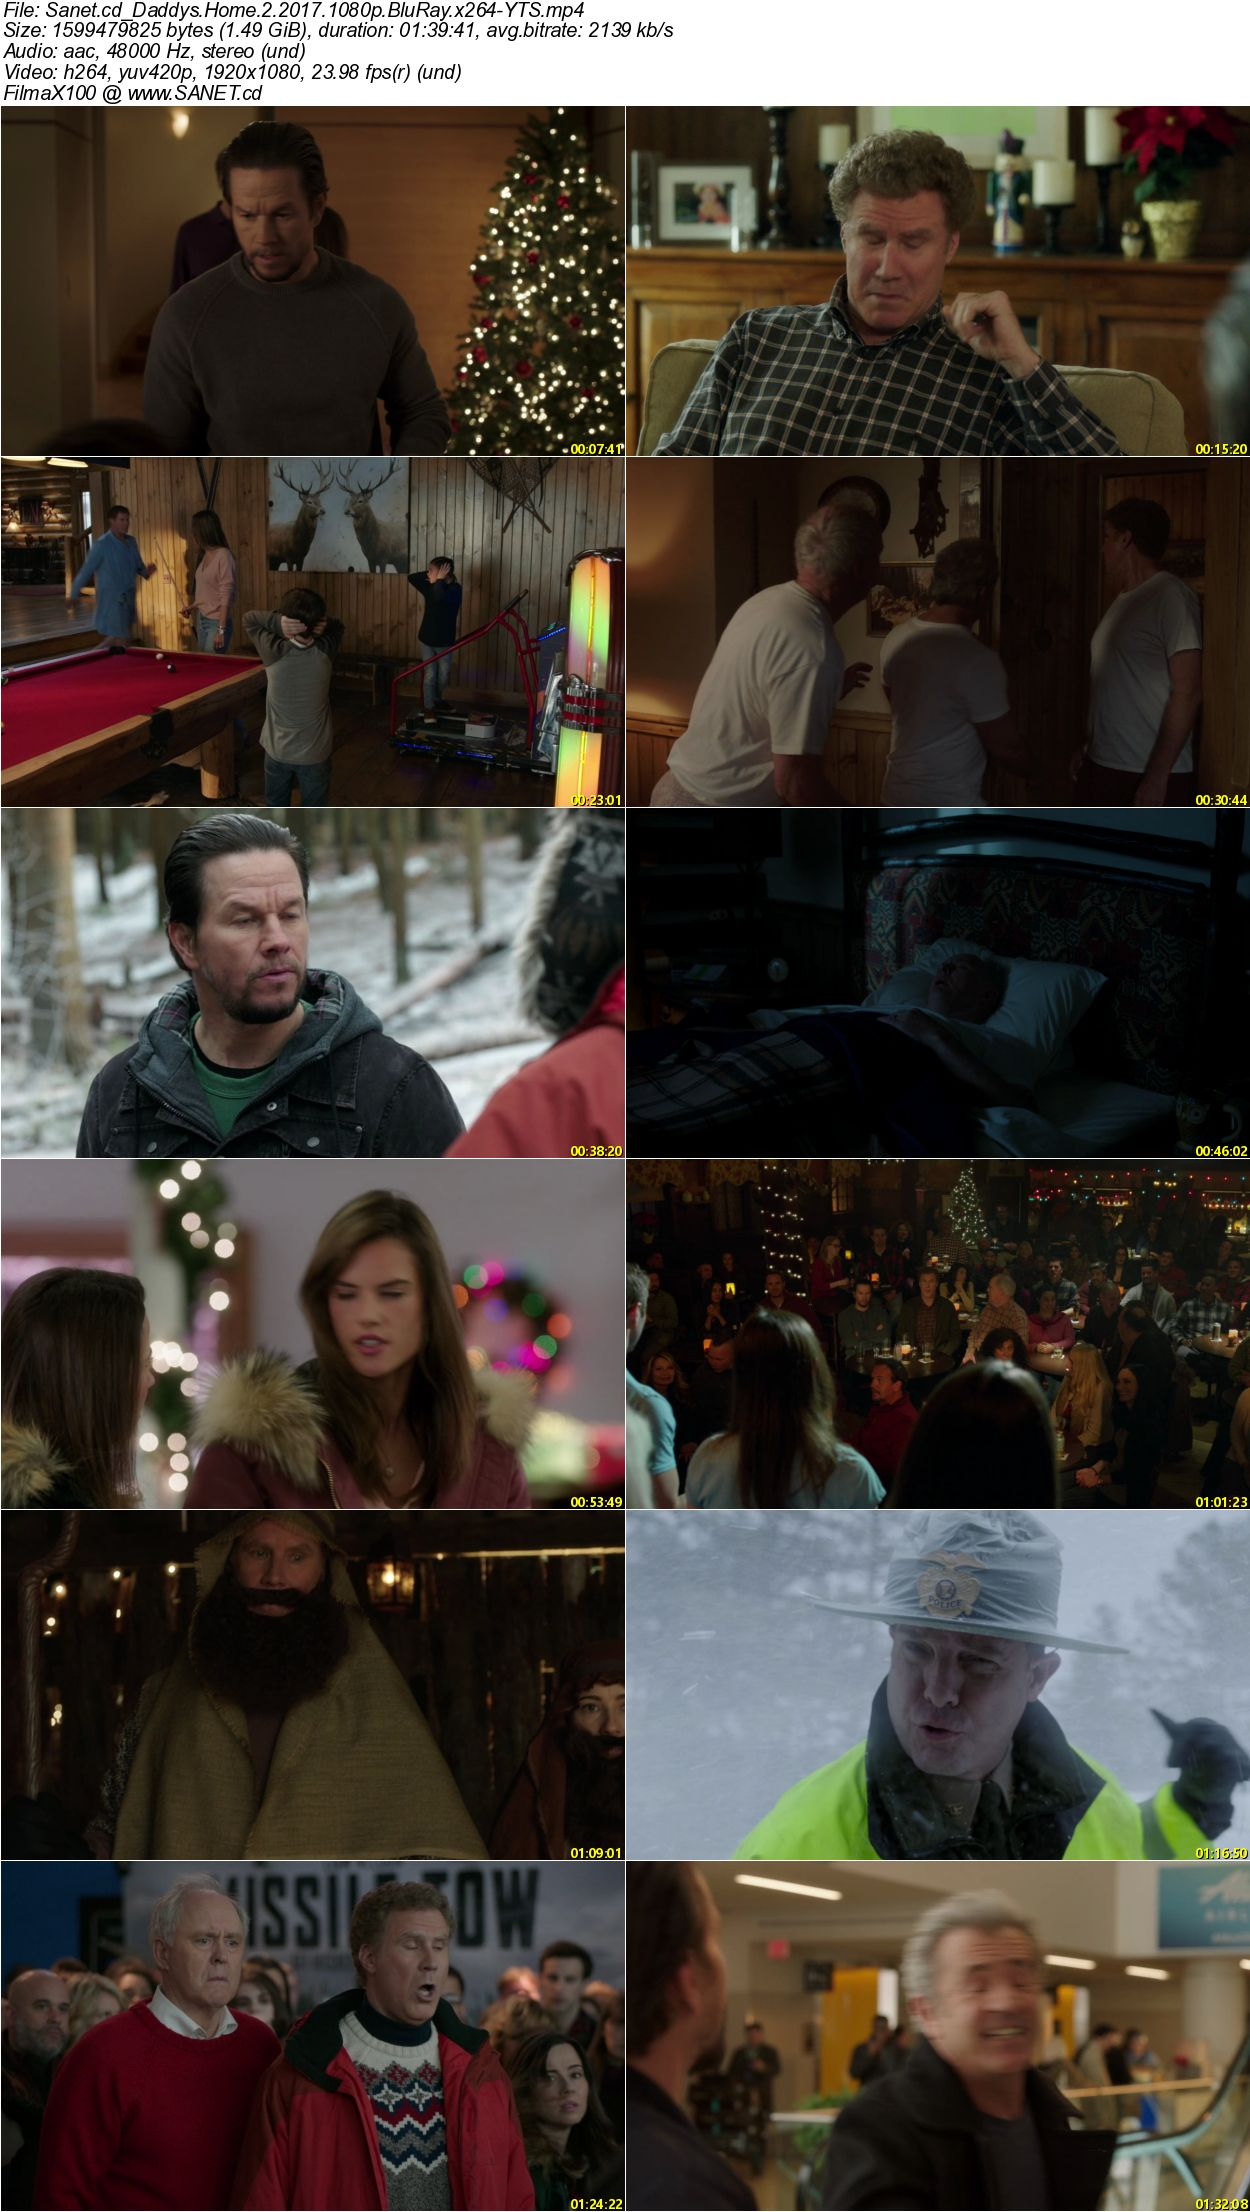 Download Daddys Home 2 2017 1080p Bluray X264 Yts Softarchive